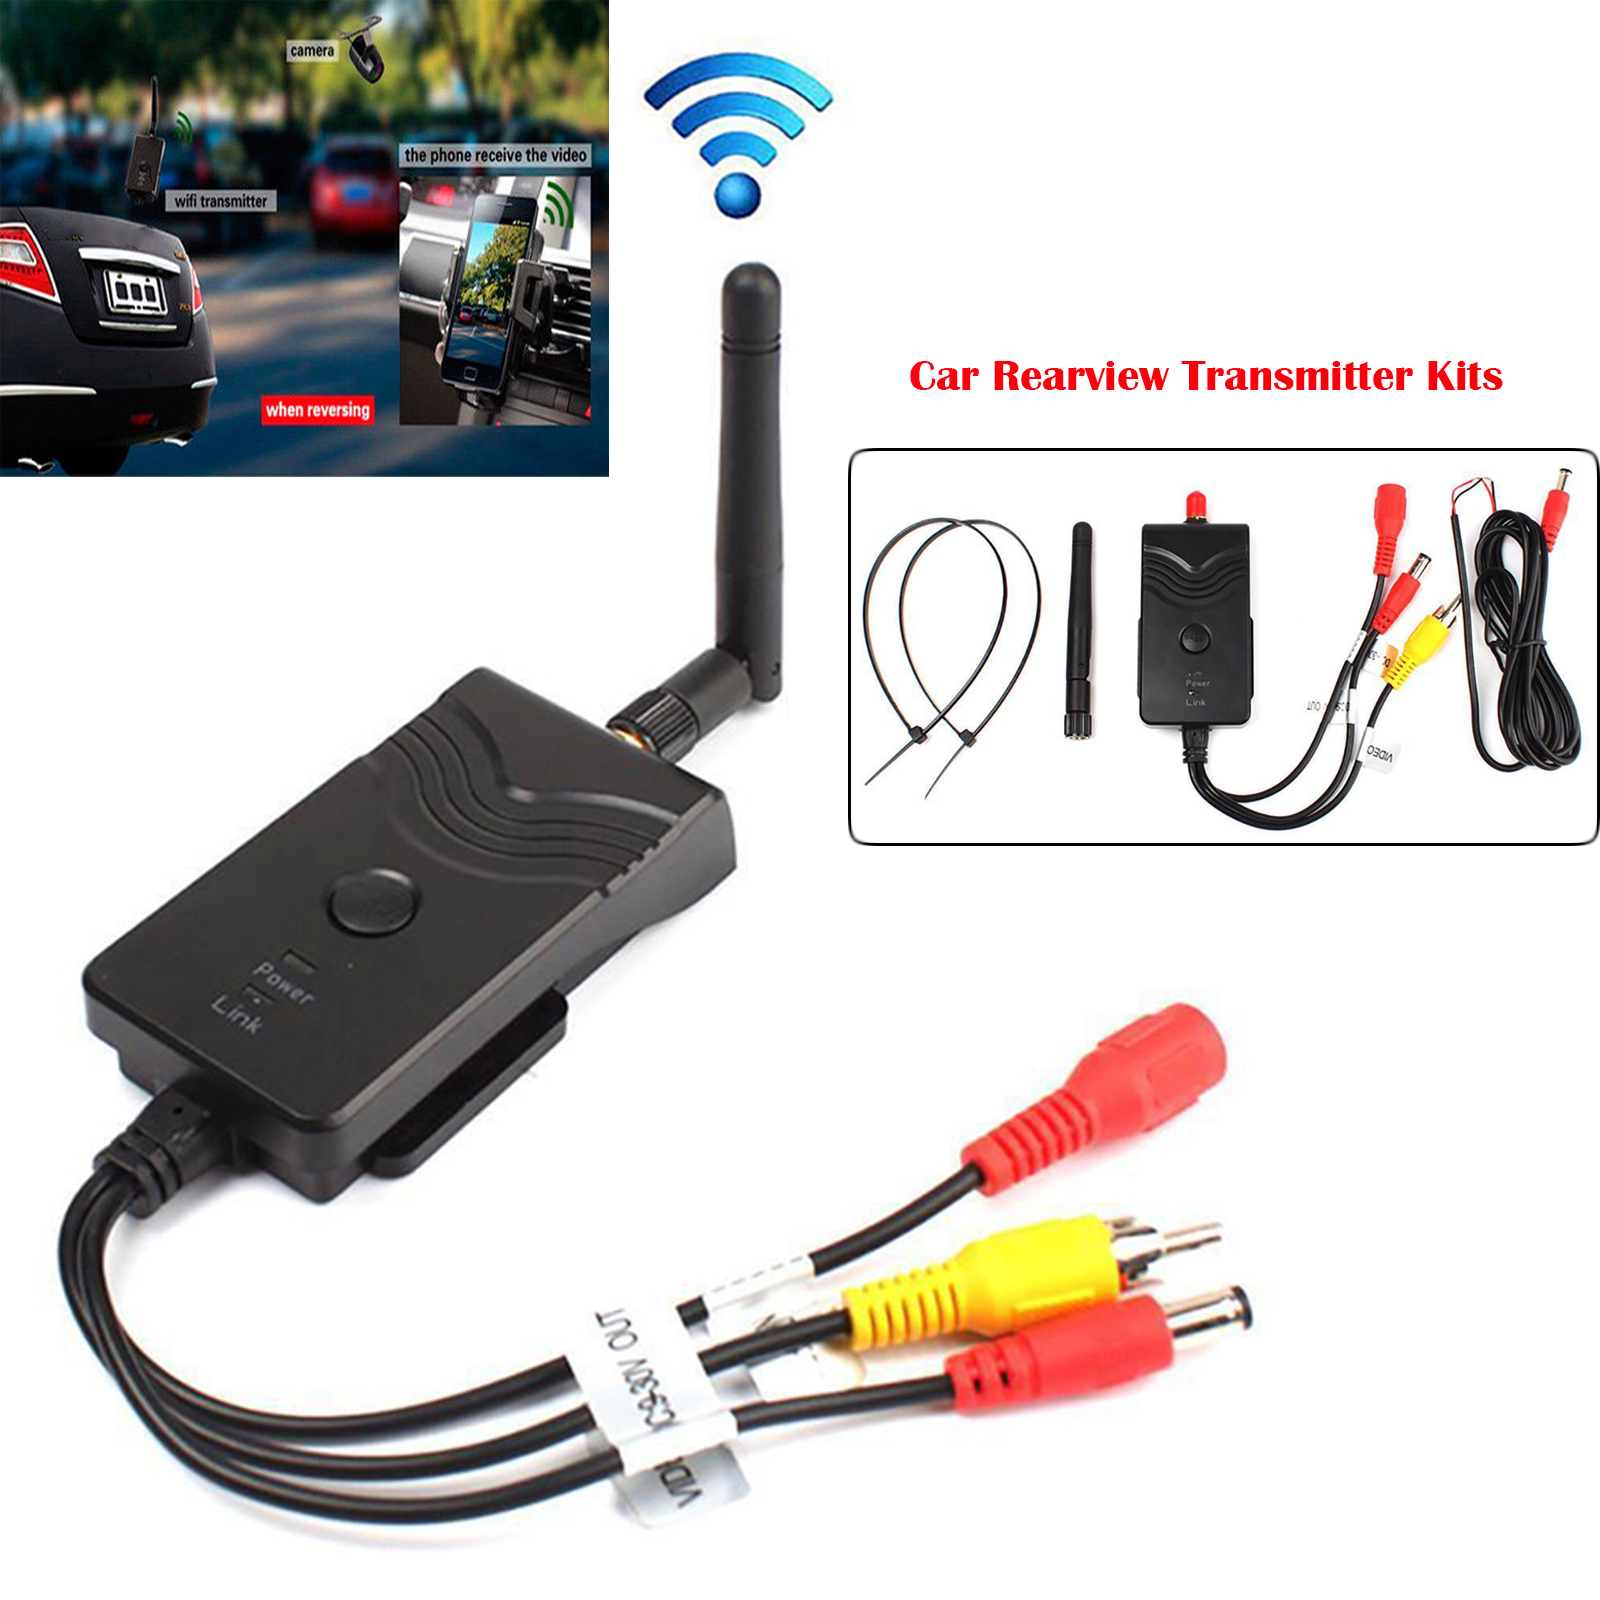 Wifi Car Backup Rearview Camera 903W Video Transmitter For iPhone Android IOS